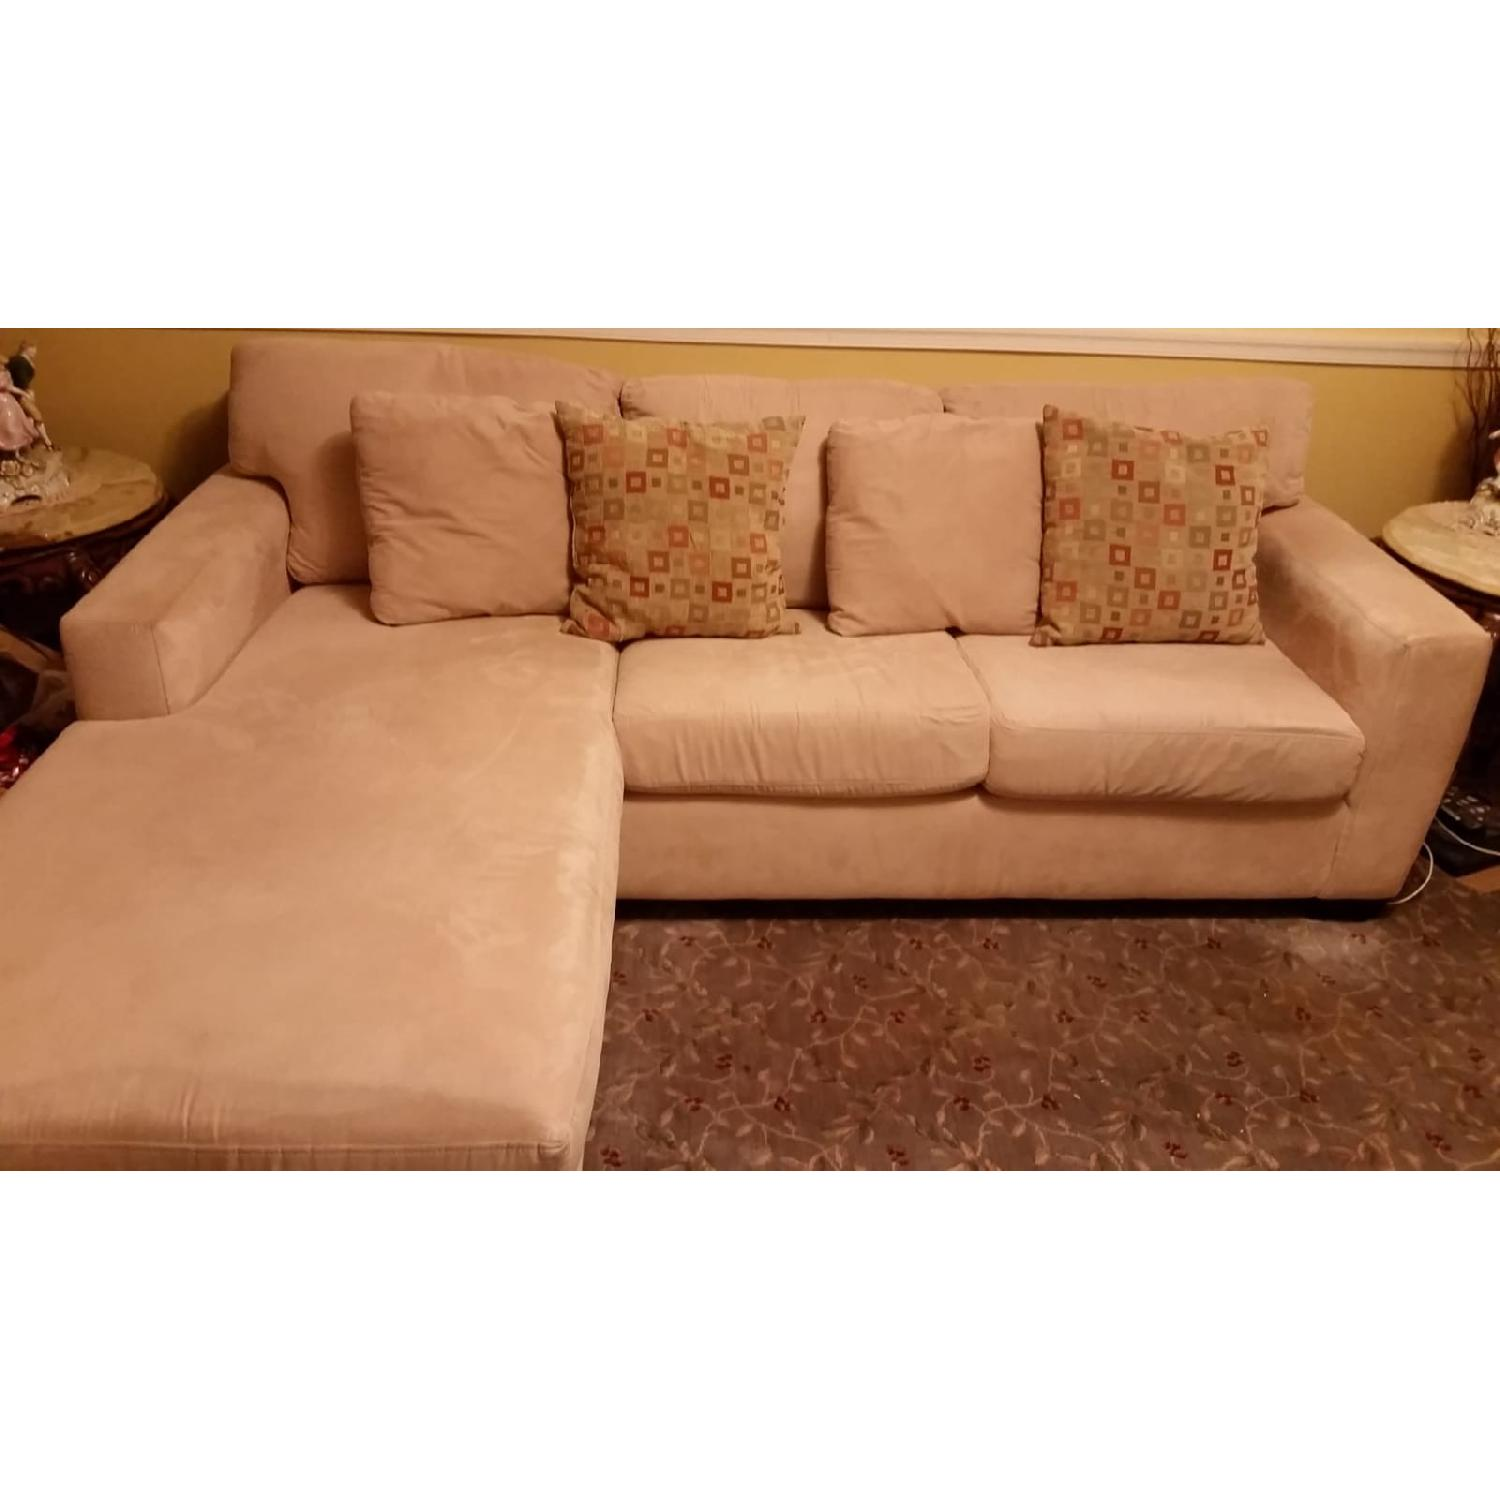 Macy's Portofino Queen Sleeper Sectional Sofa - image-1